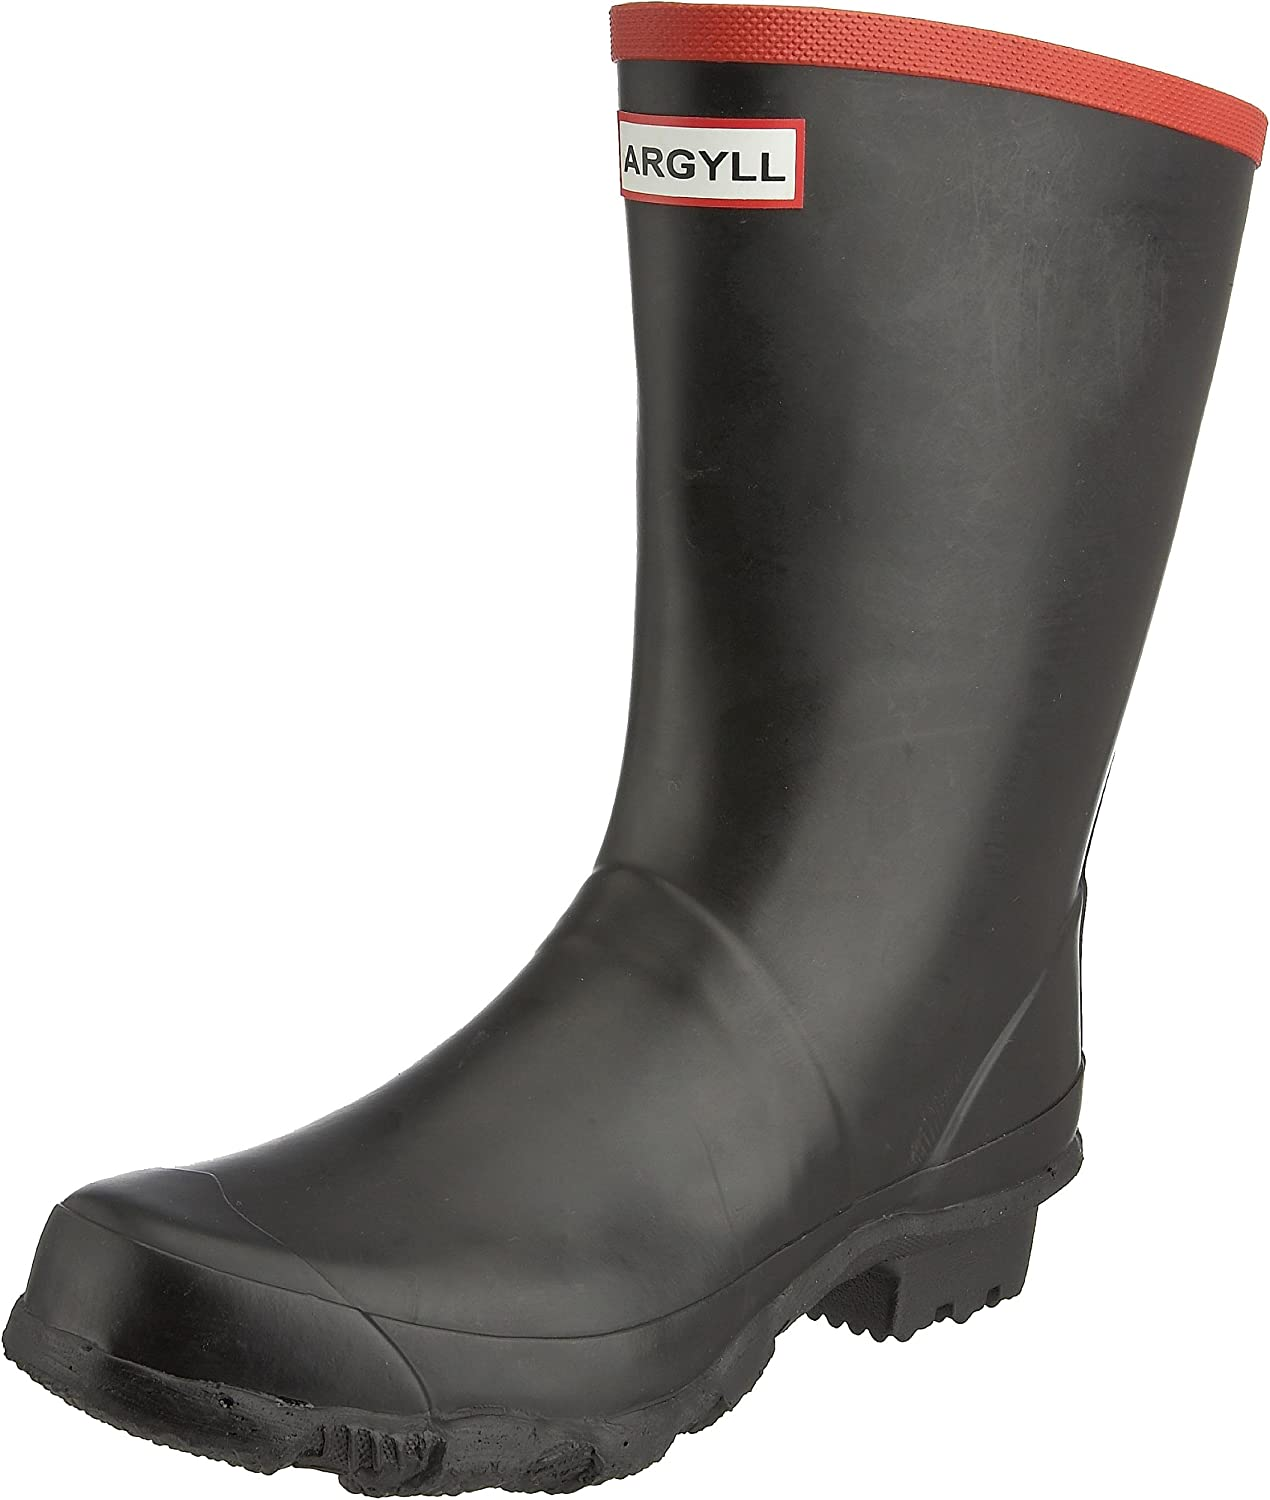 Hunter Men's Argyll Short Knee Wellies